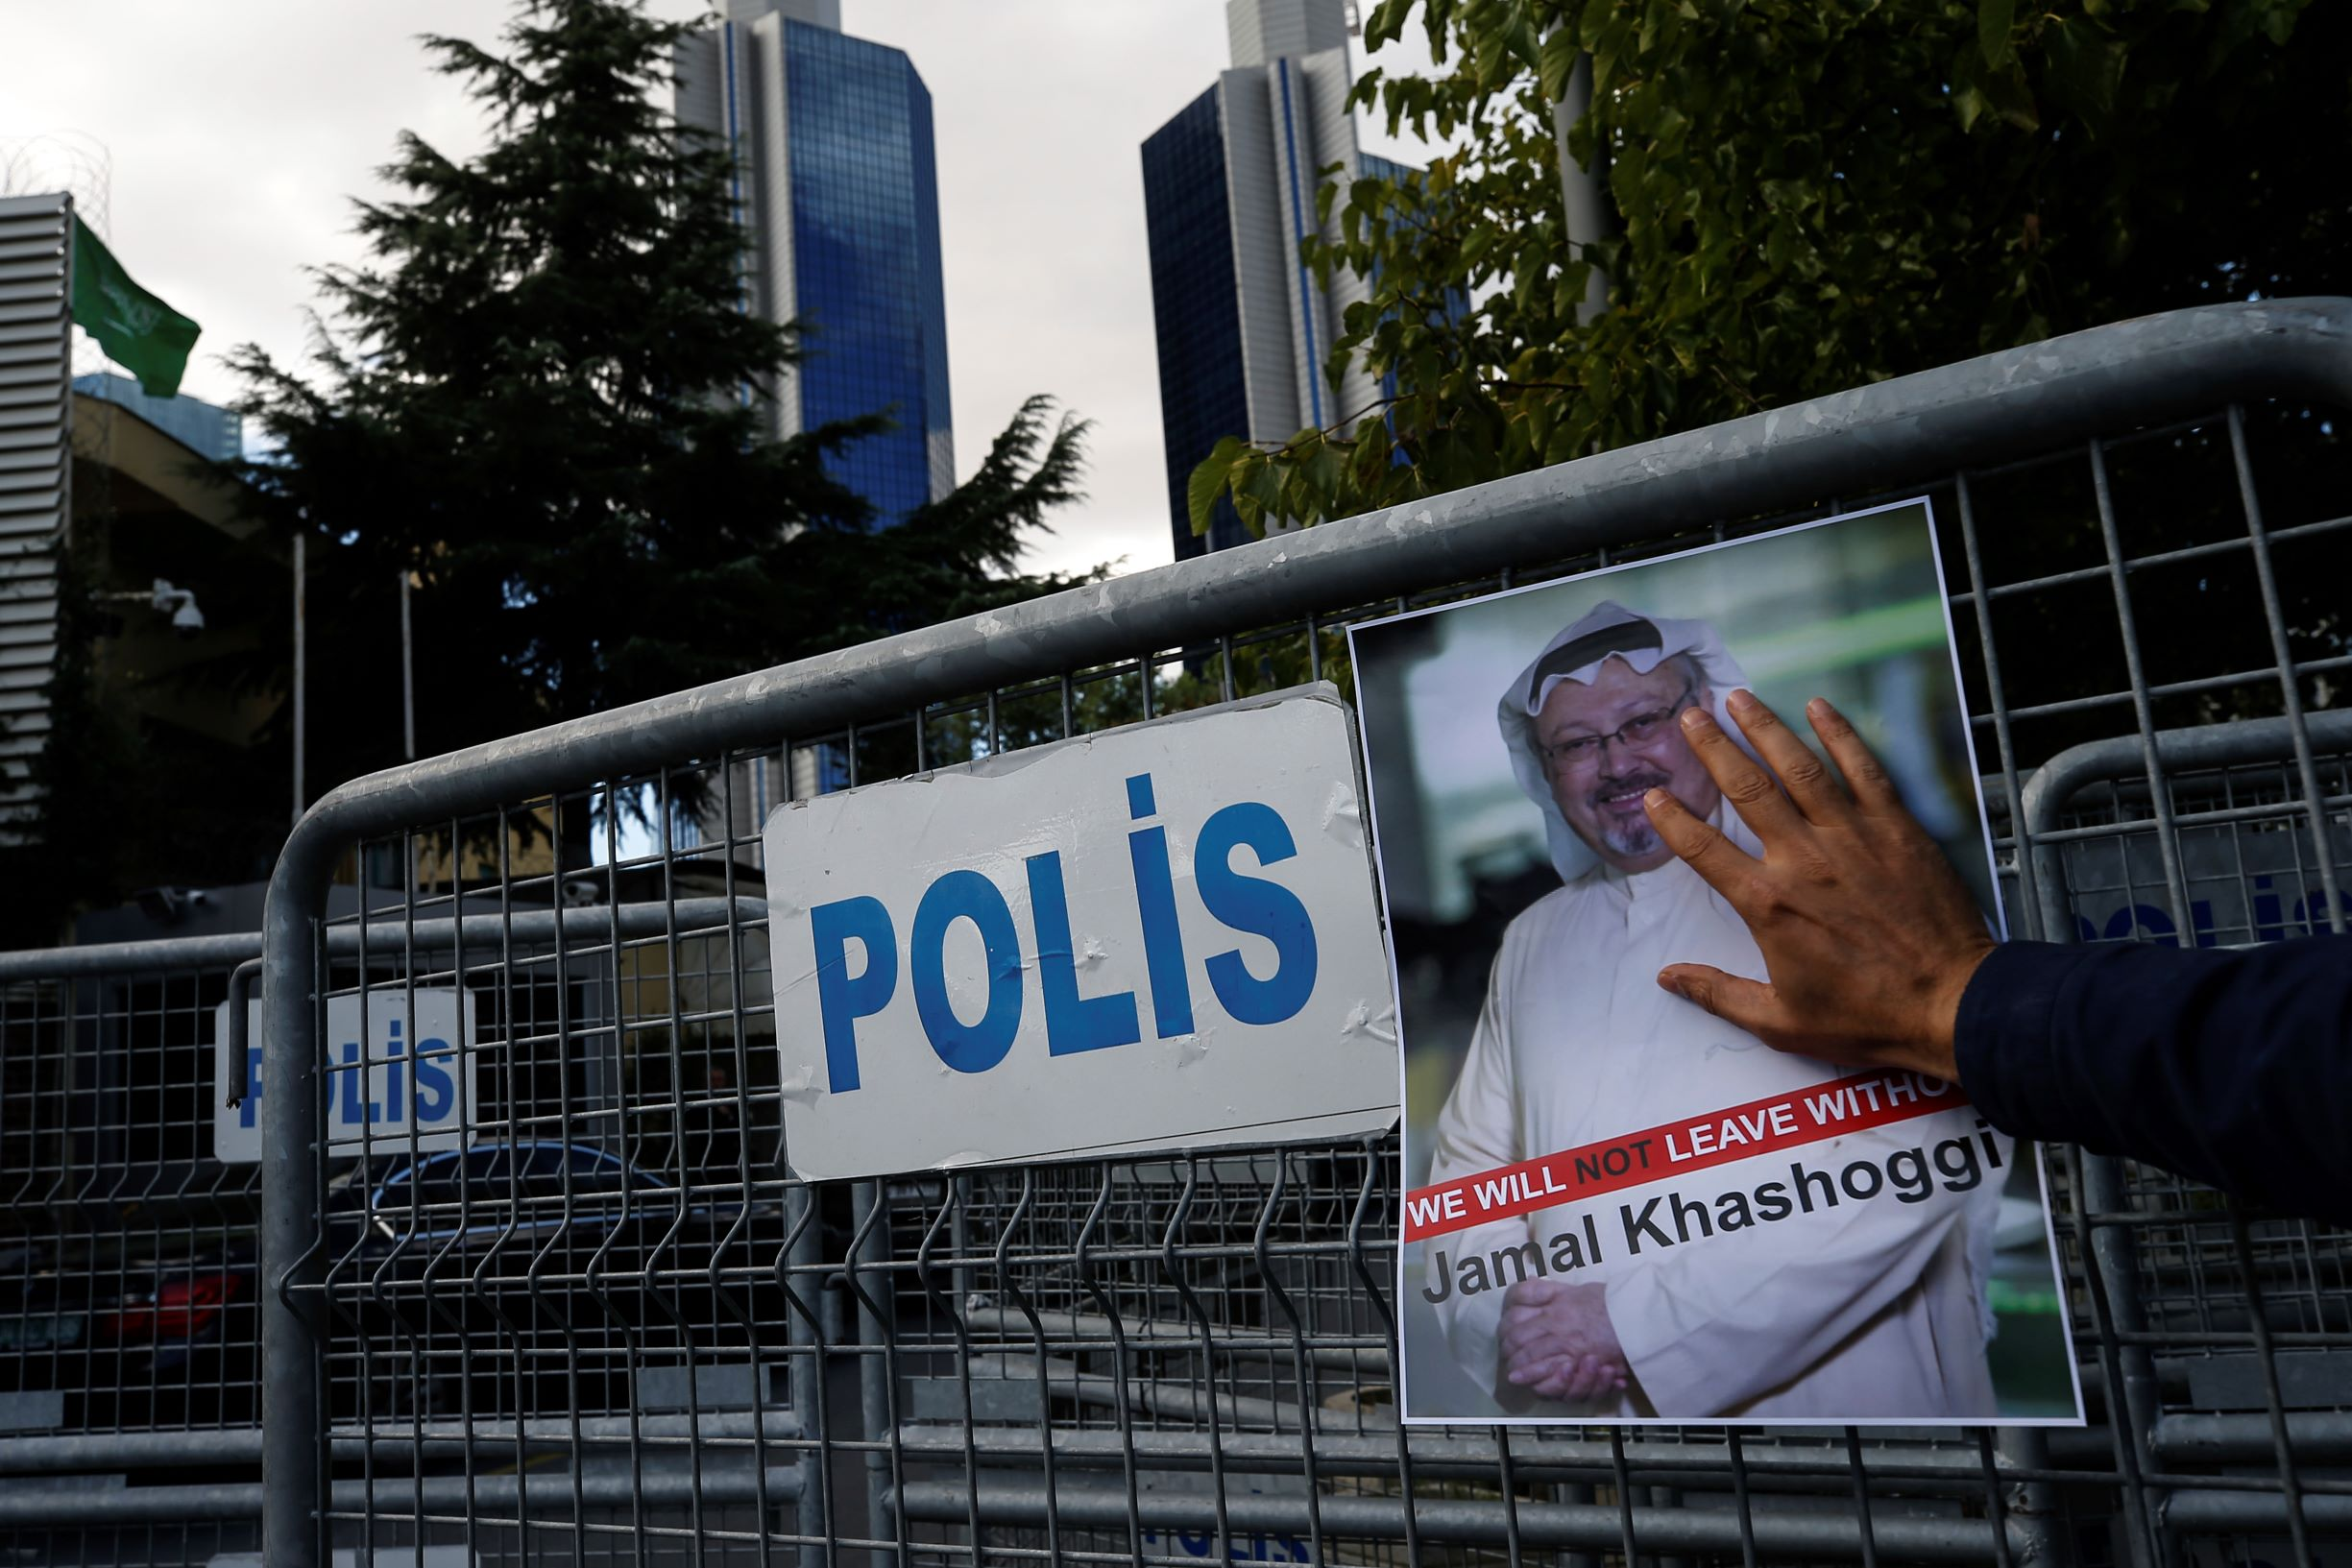 World Reacts With Skepticism To Saudi Confirmation Of Jamal Khashoggi's Death